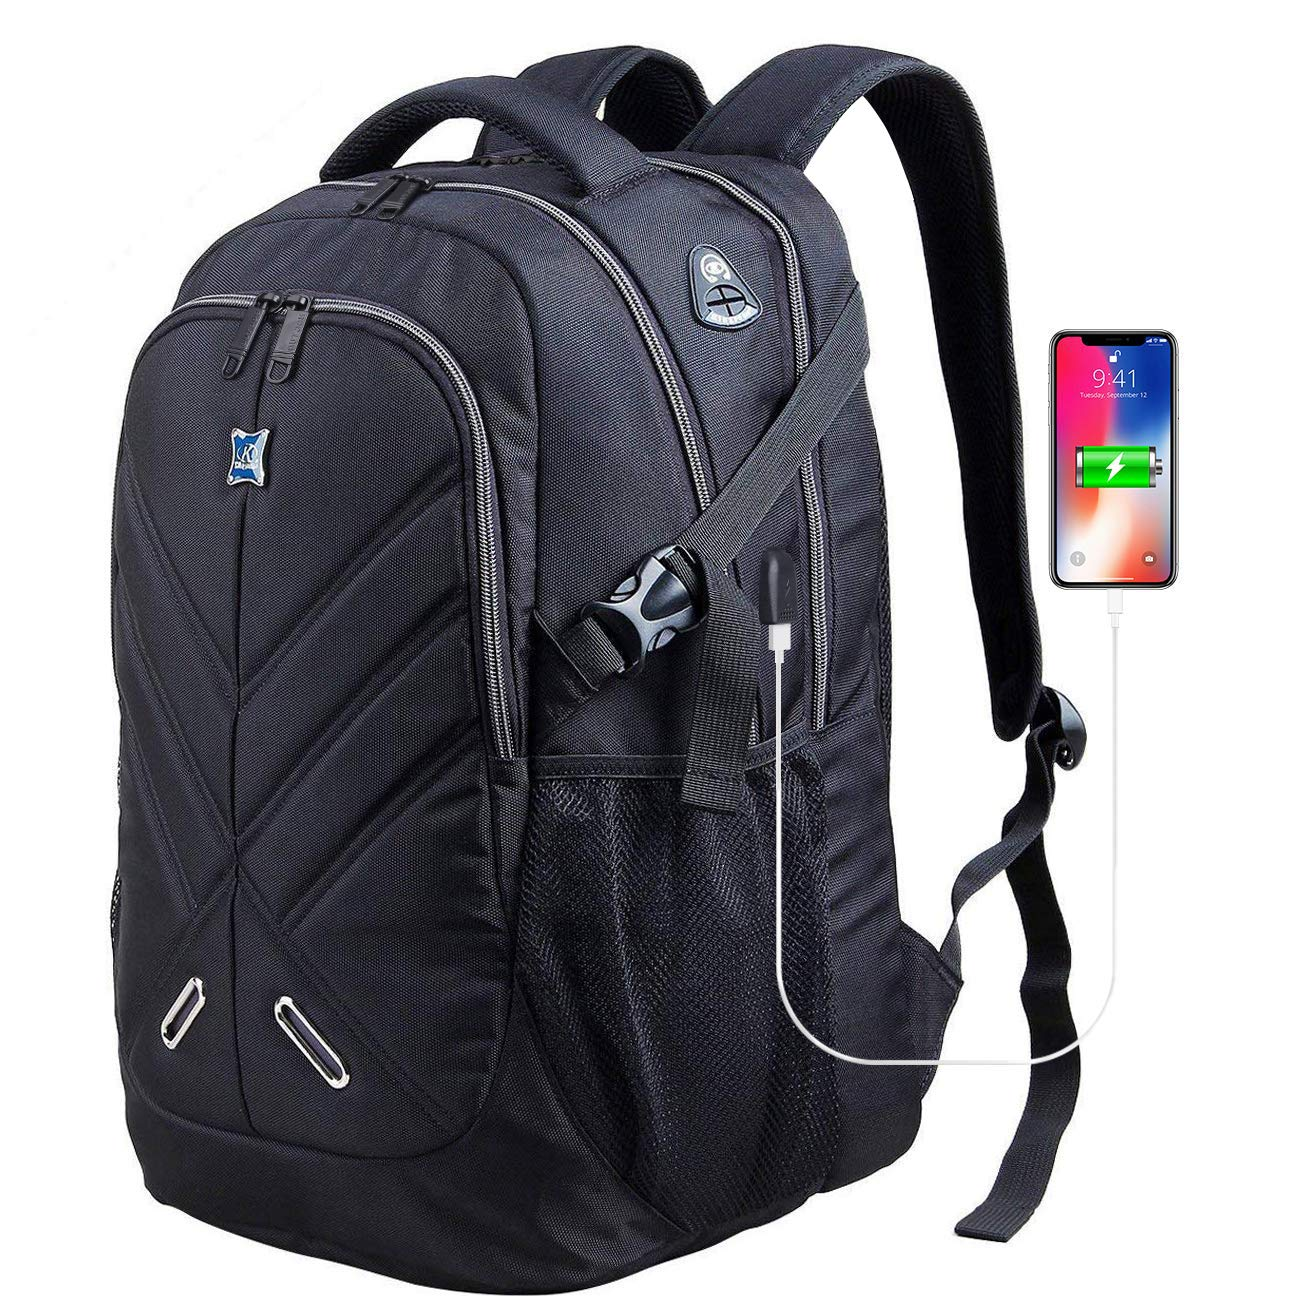 Backpack for Men and Women Fit 17 Inches All 15.6 Inches Laptops Waterproof Shockproof OUTJOY School Bag Travel Laptop Backpack Book Bag Business Work Daypack with USB Charging Port Black by OUTJOY